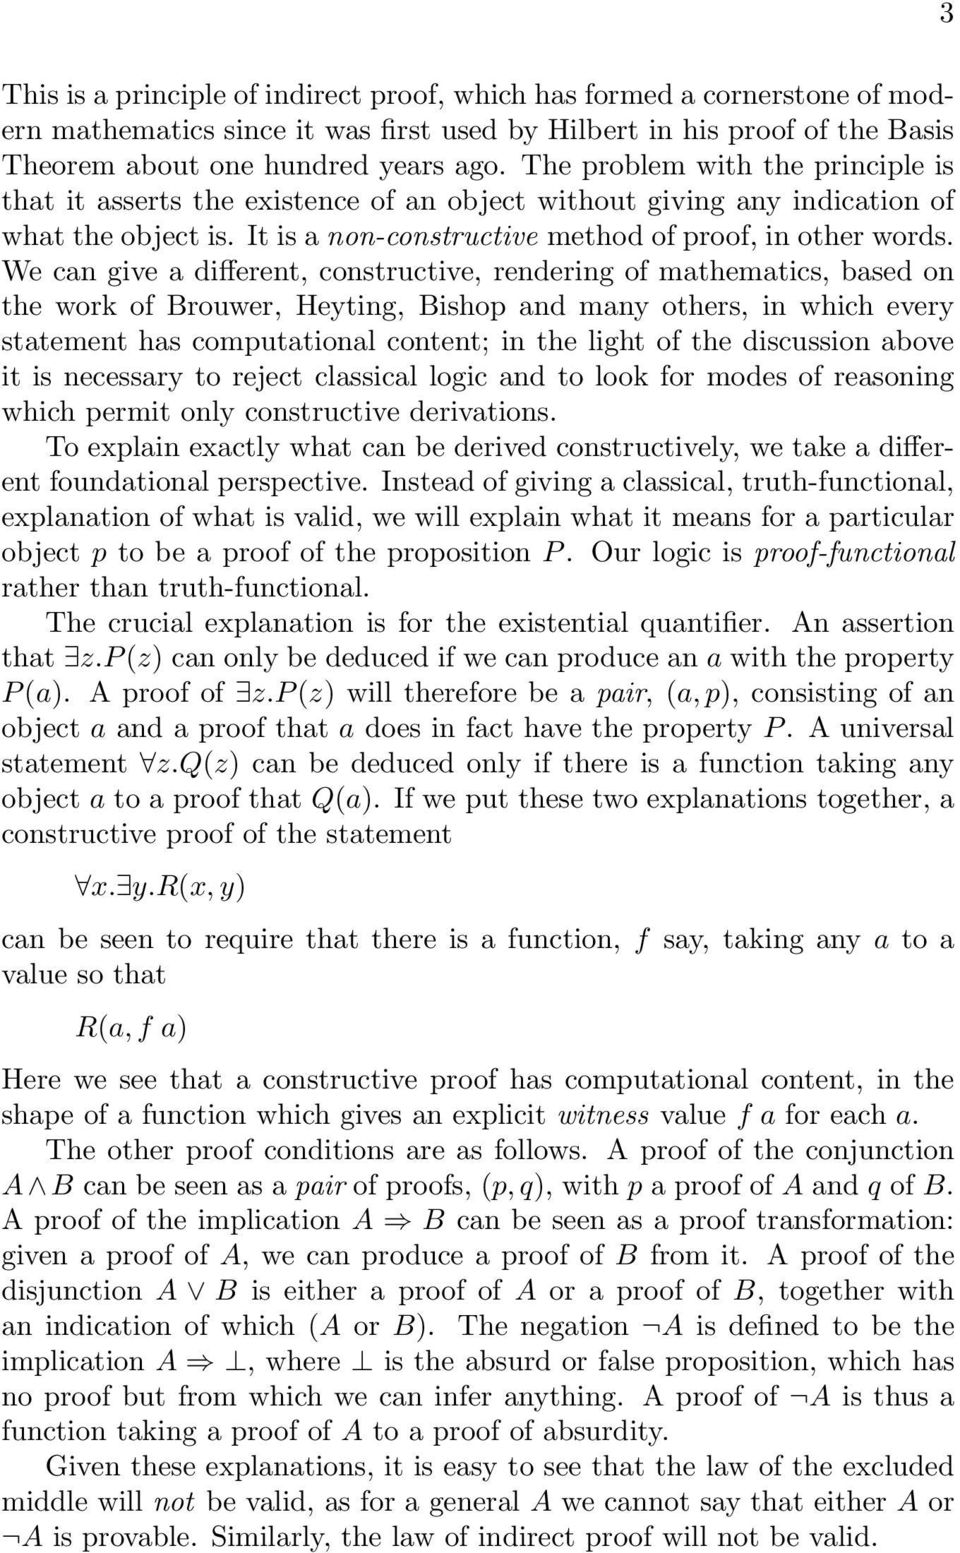 We can give a different, constructive, rendering of mathematics, based on the work of Brouwer, Heyting, Bishop and many others, in which every statement has computational content; in the light of the